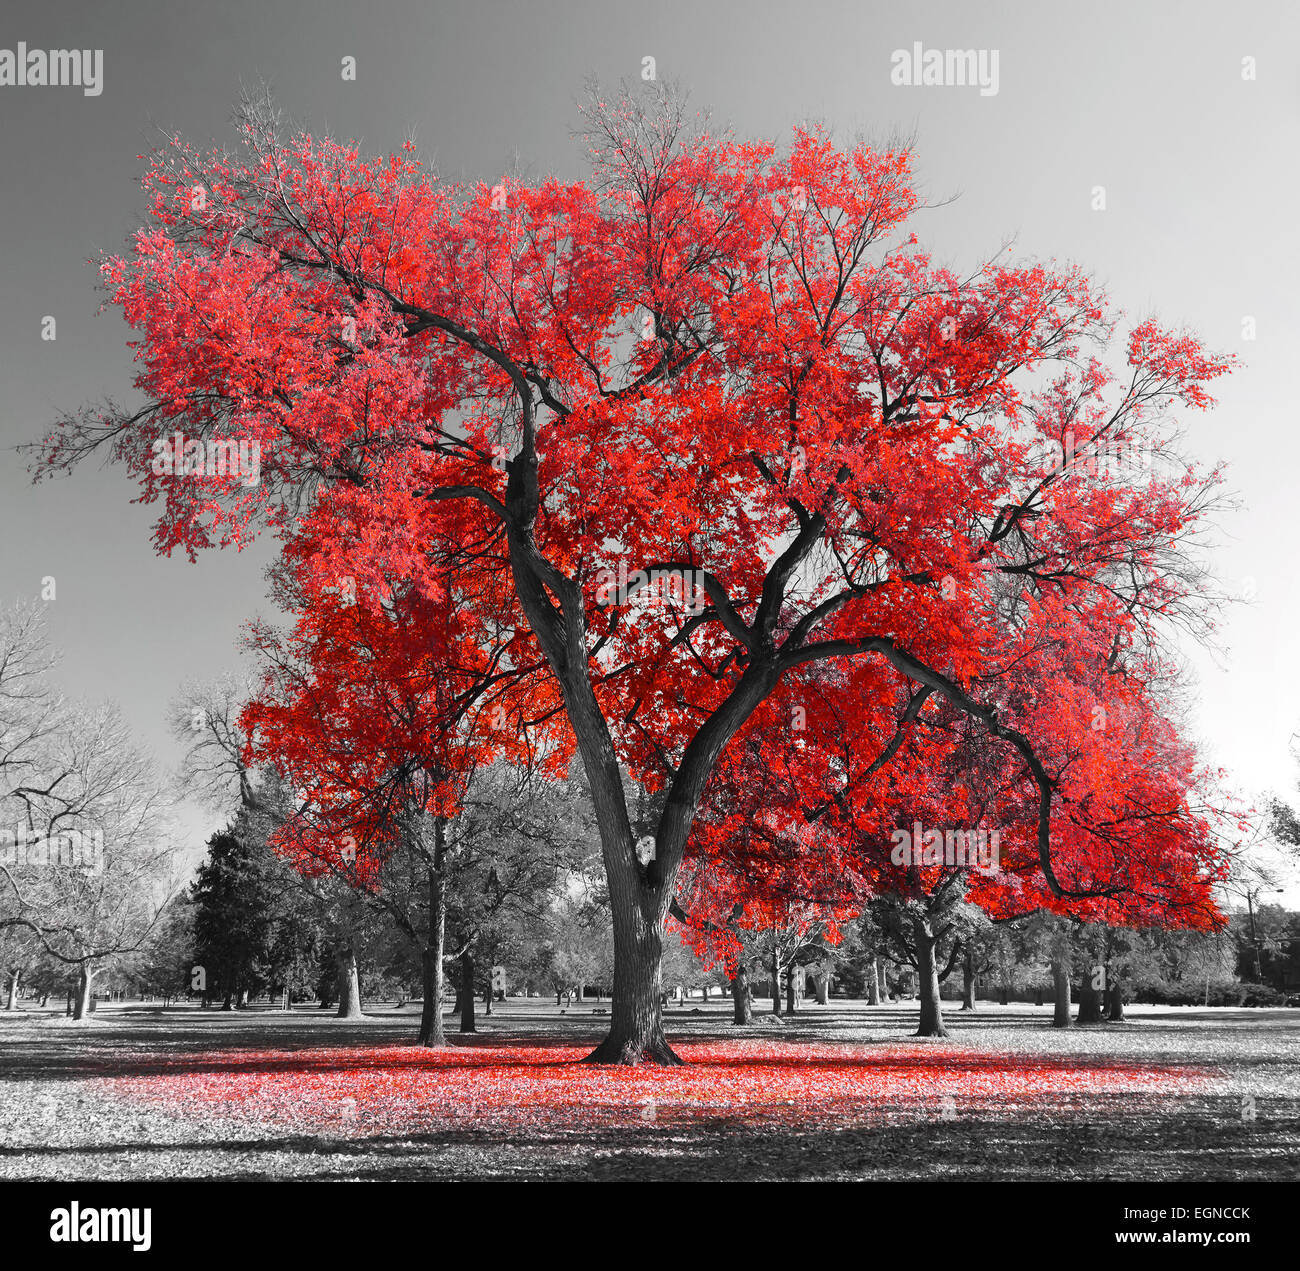 Big red tree in a black and white landscape - Stock Image